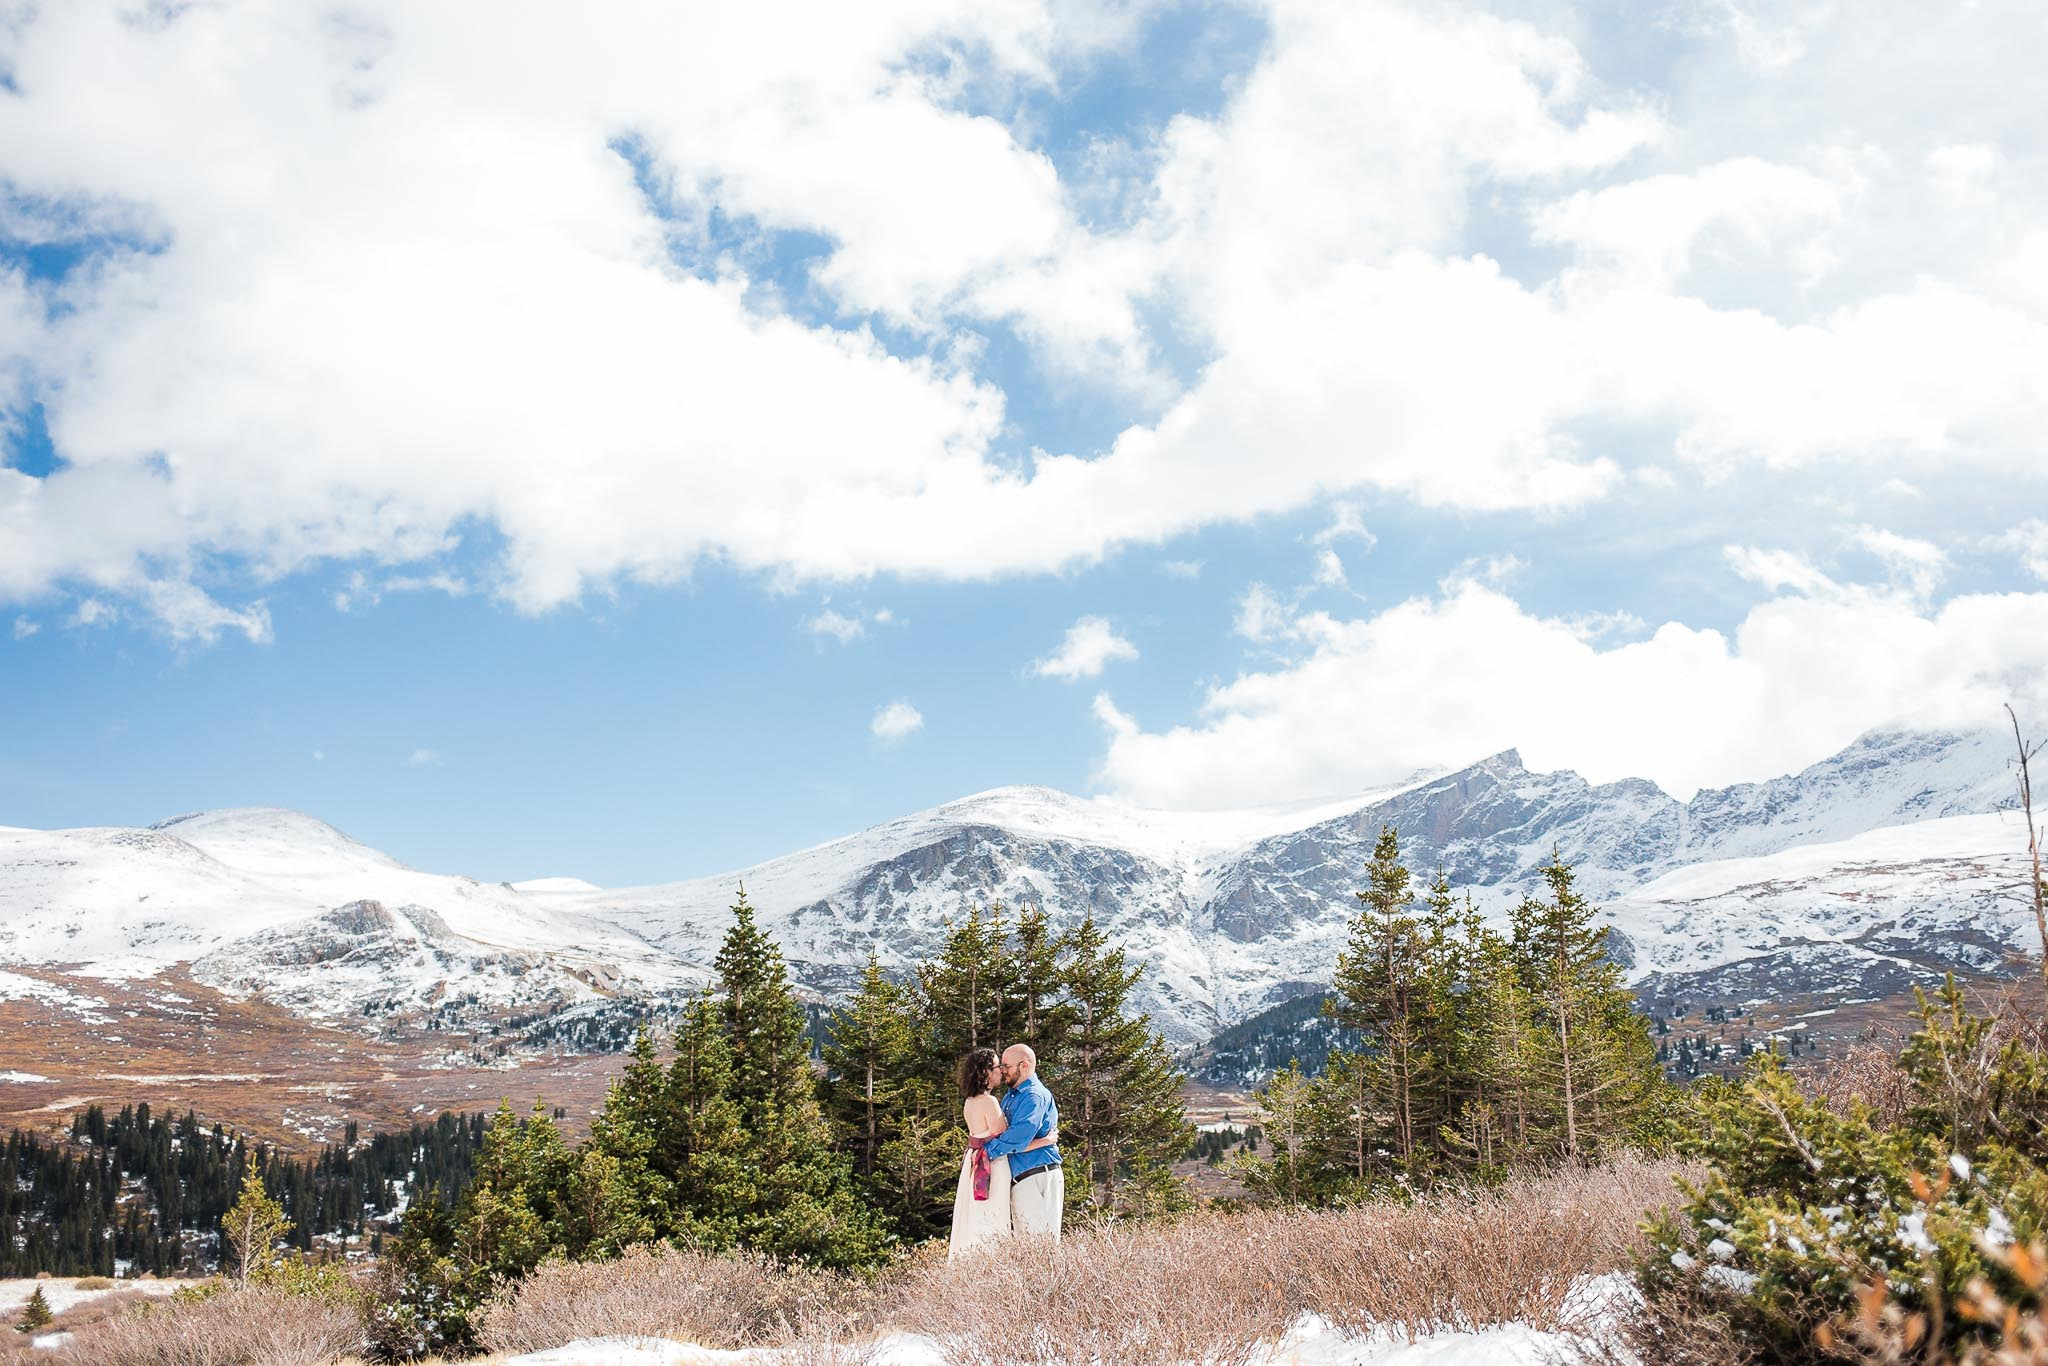 Husband and wife kiss in front of mountain vista including Mt. Beirstadt during their Guanella Pass vow renewal in Colorado